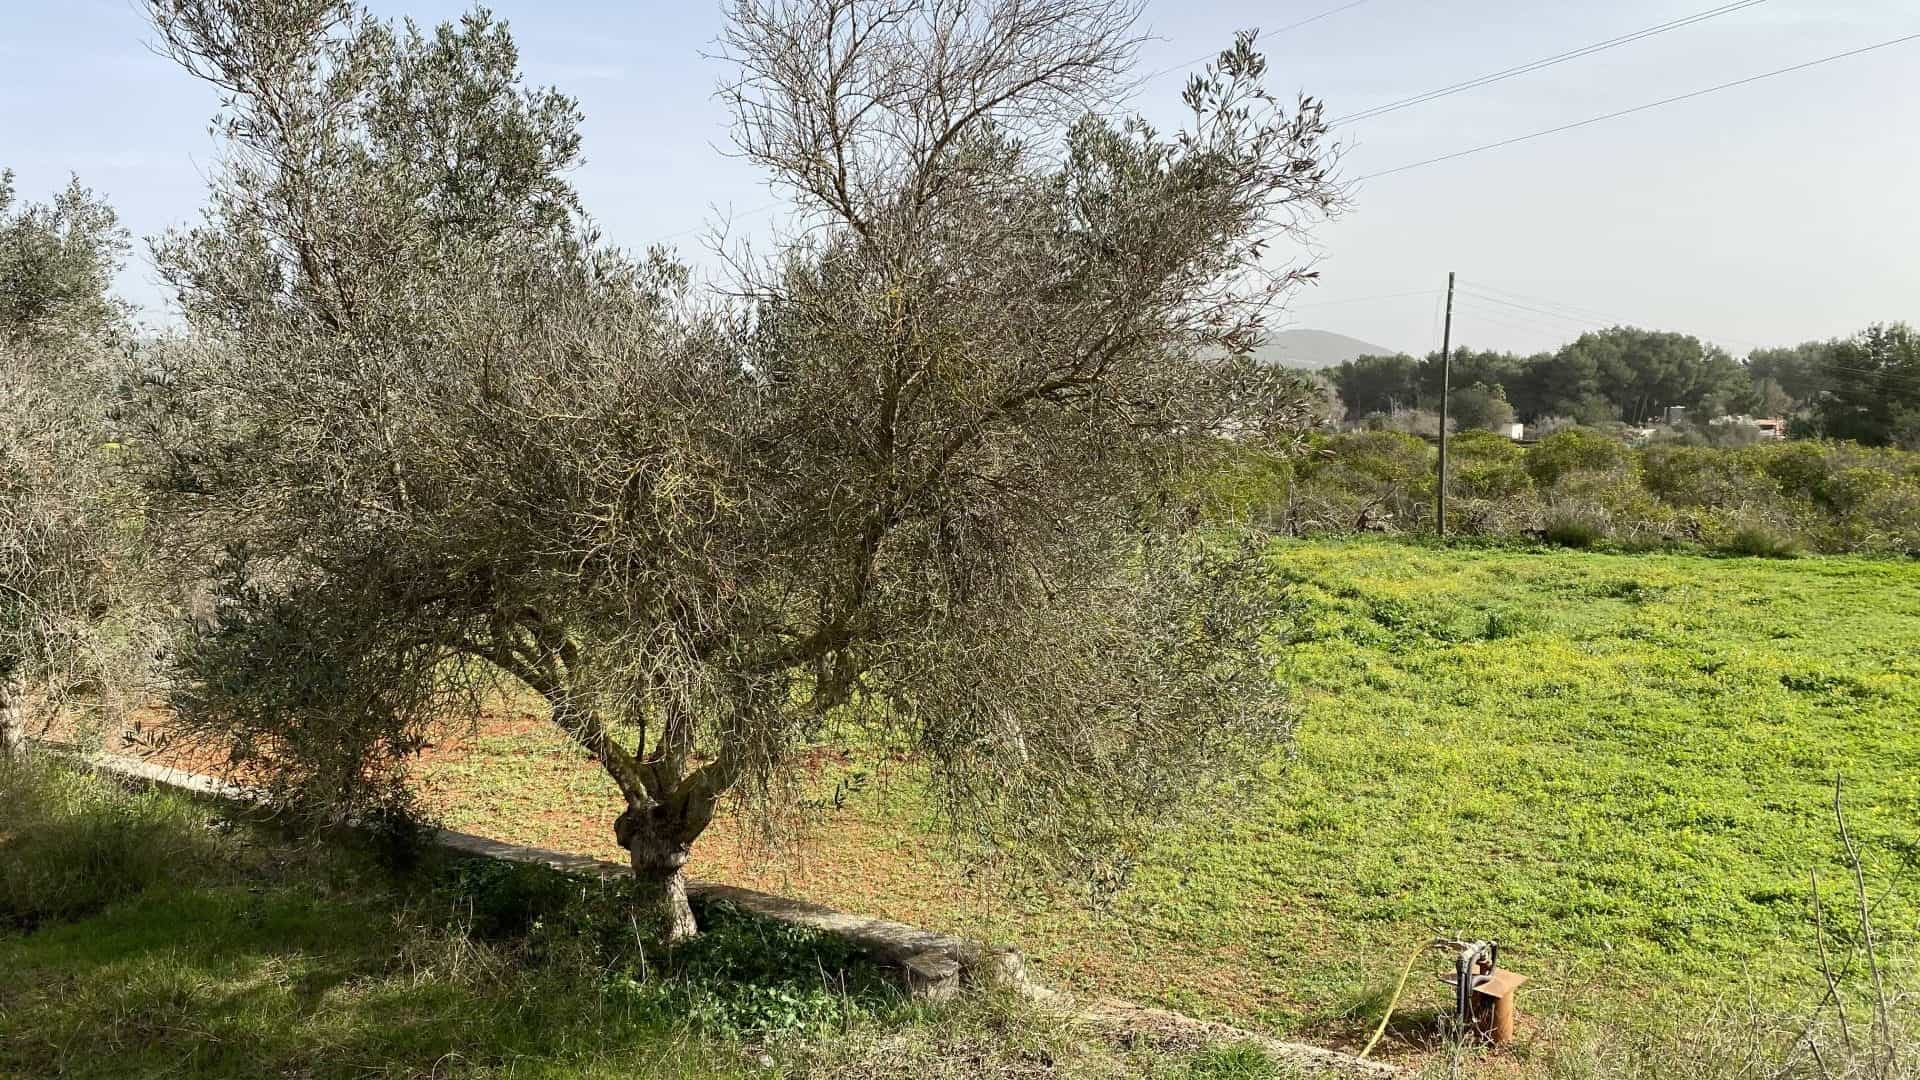 Buy land in St Gertrudis to build a house